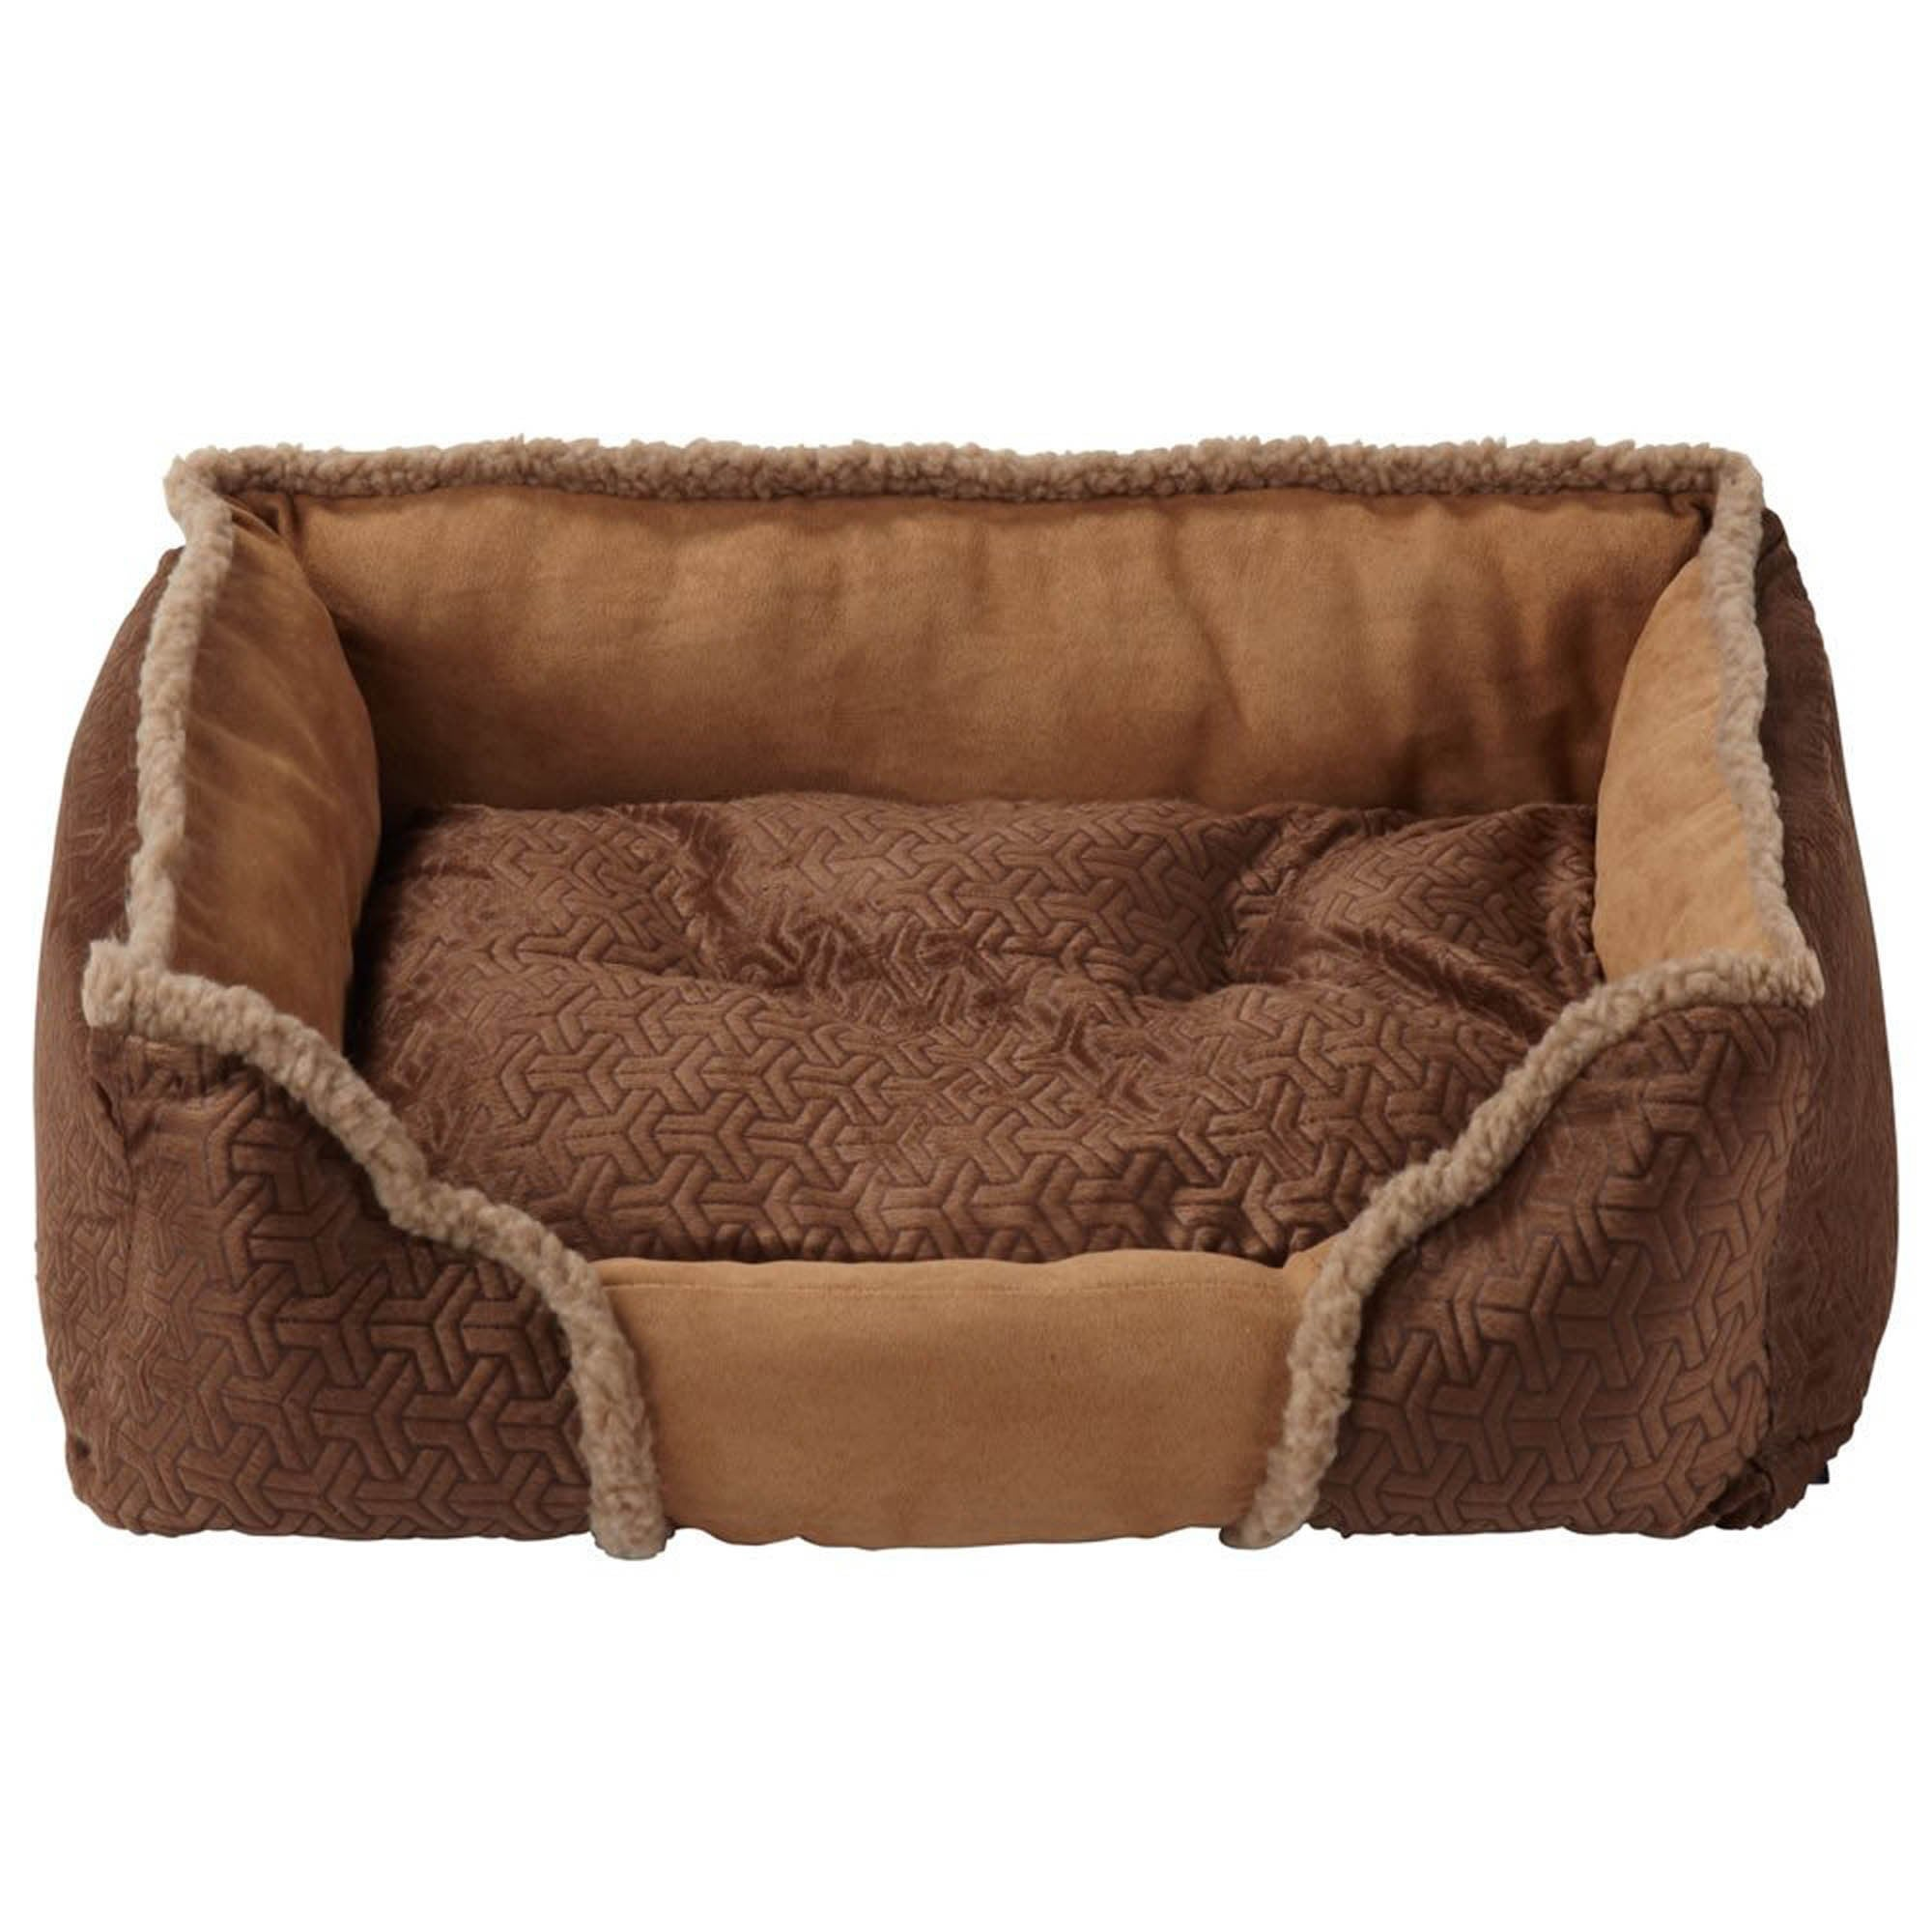 Bunty Brown Kensington Dog Bed Spice (Brown)